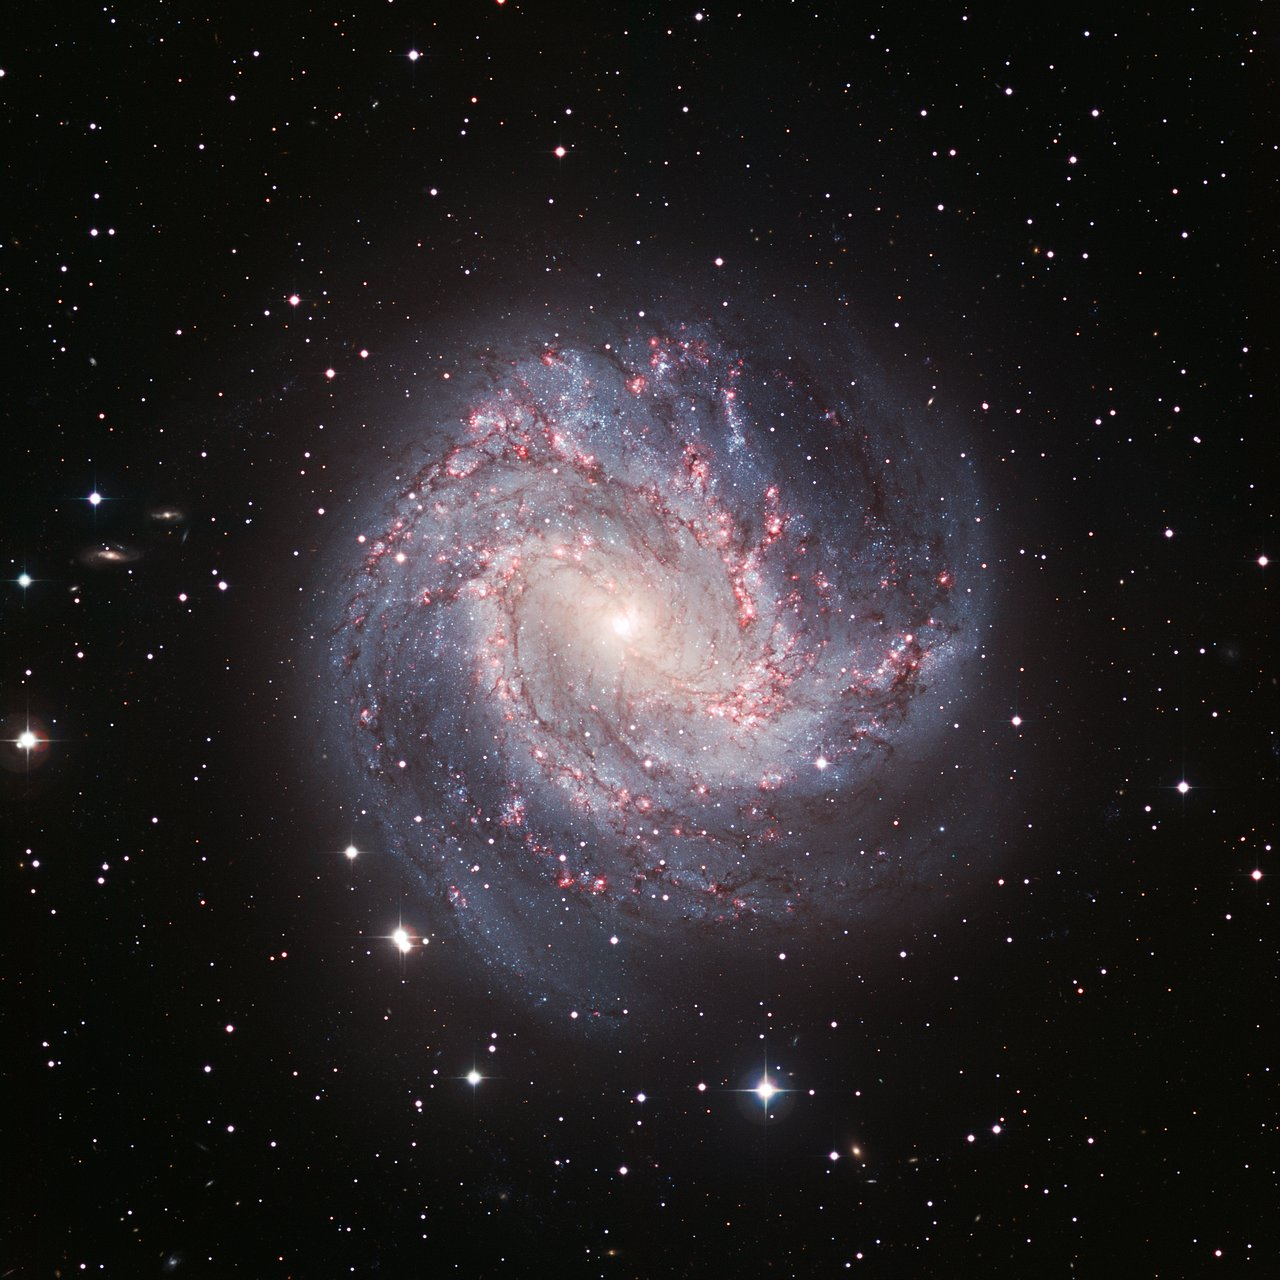 Mounted image 037: Spiral galaxy Messier 83